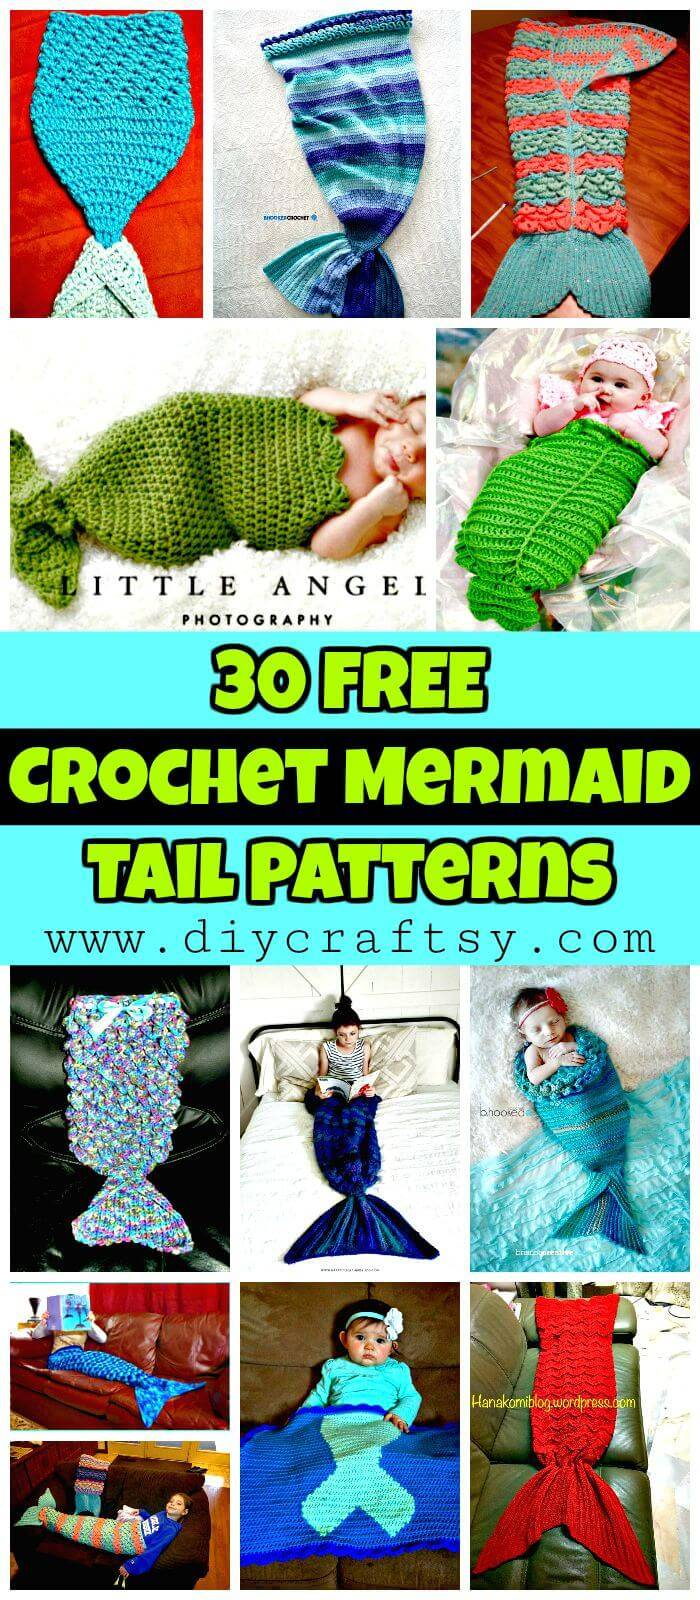 Crochet Mermaid Tail Patterns - 30 Free Crochet Patterns - DIY Crafts